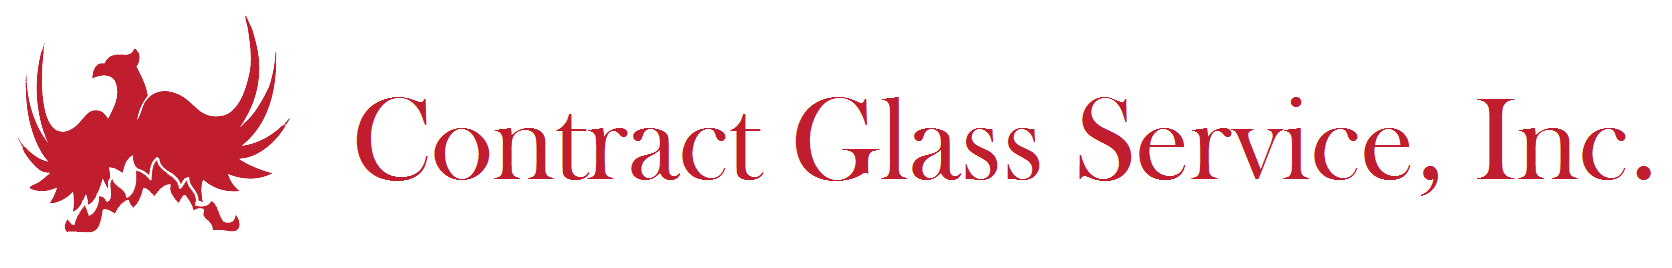 Contract Glass Logo Massachusetts